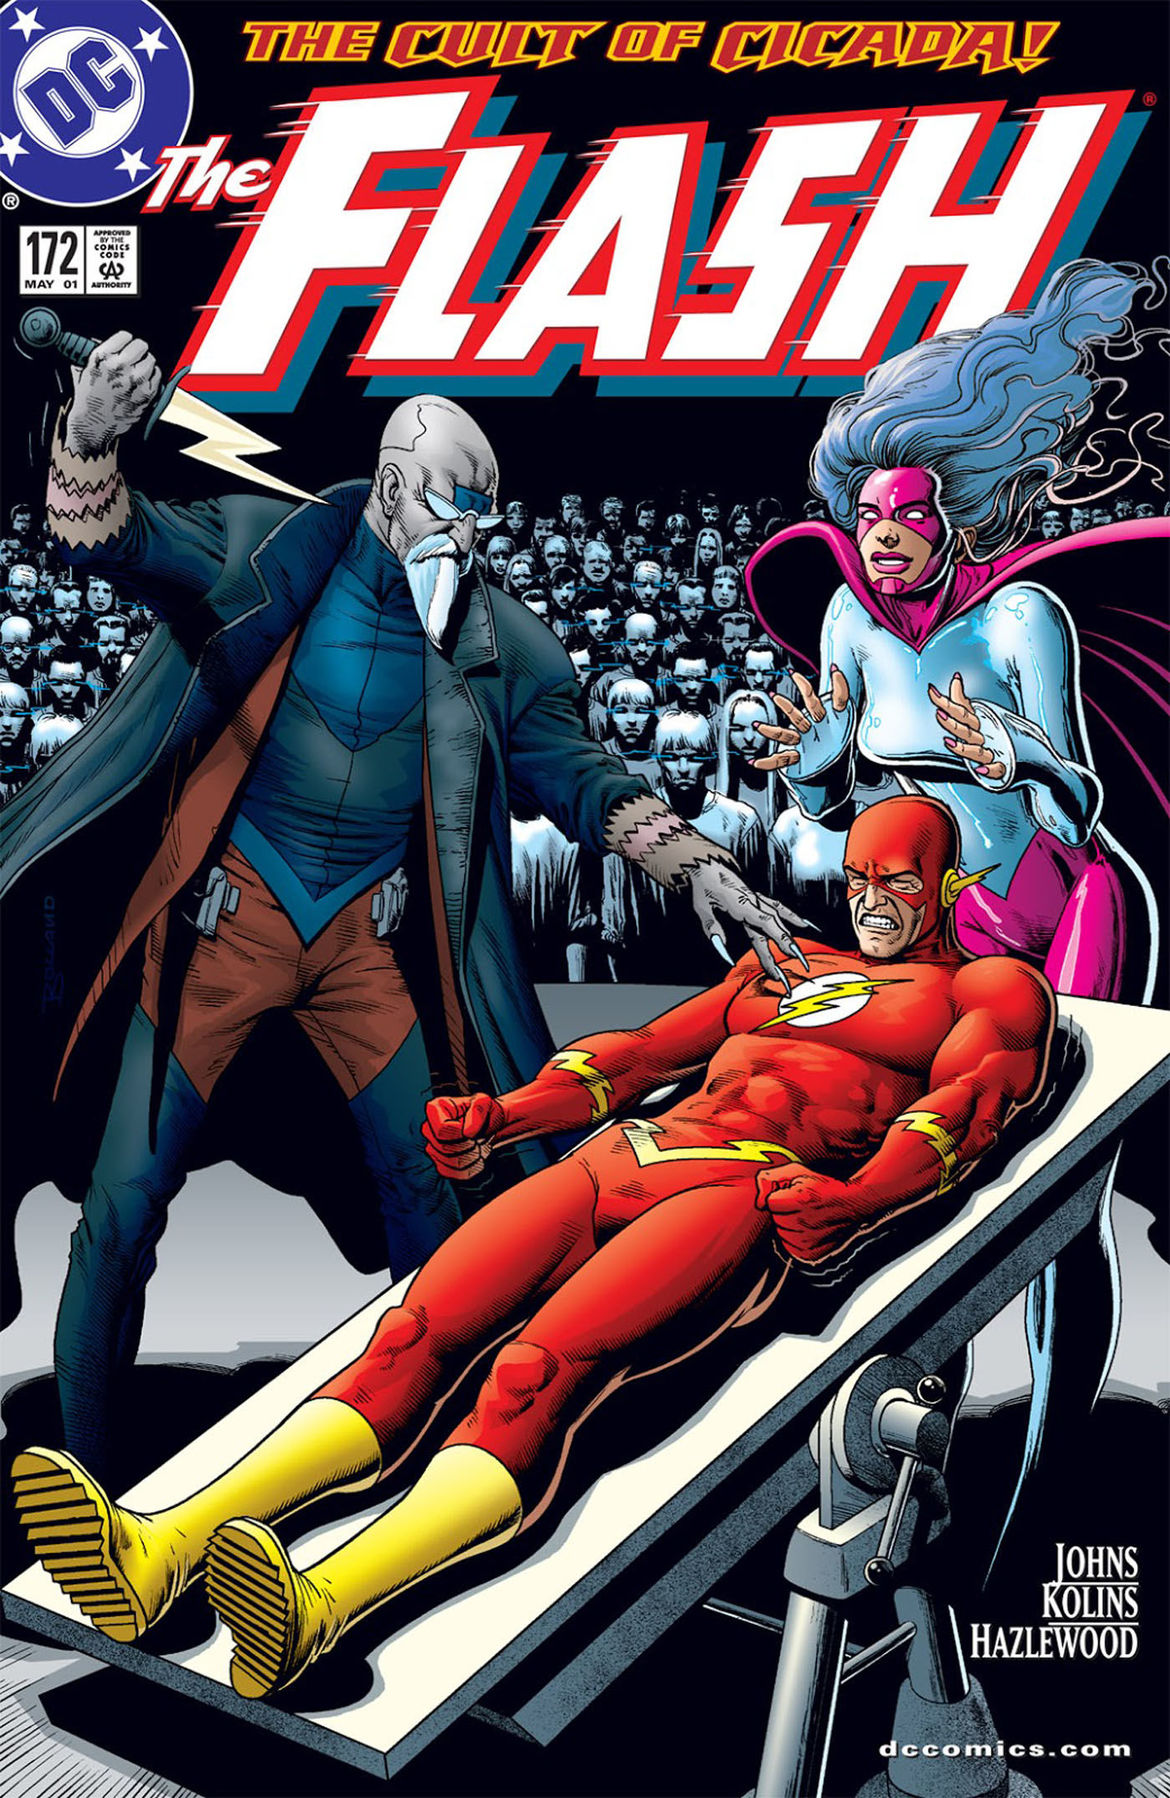 The Flash 172 cover